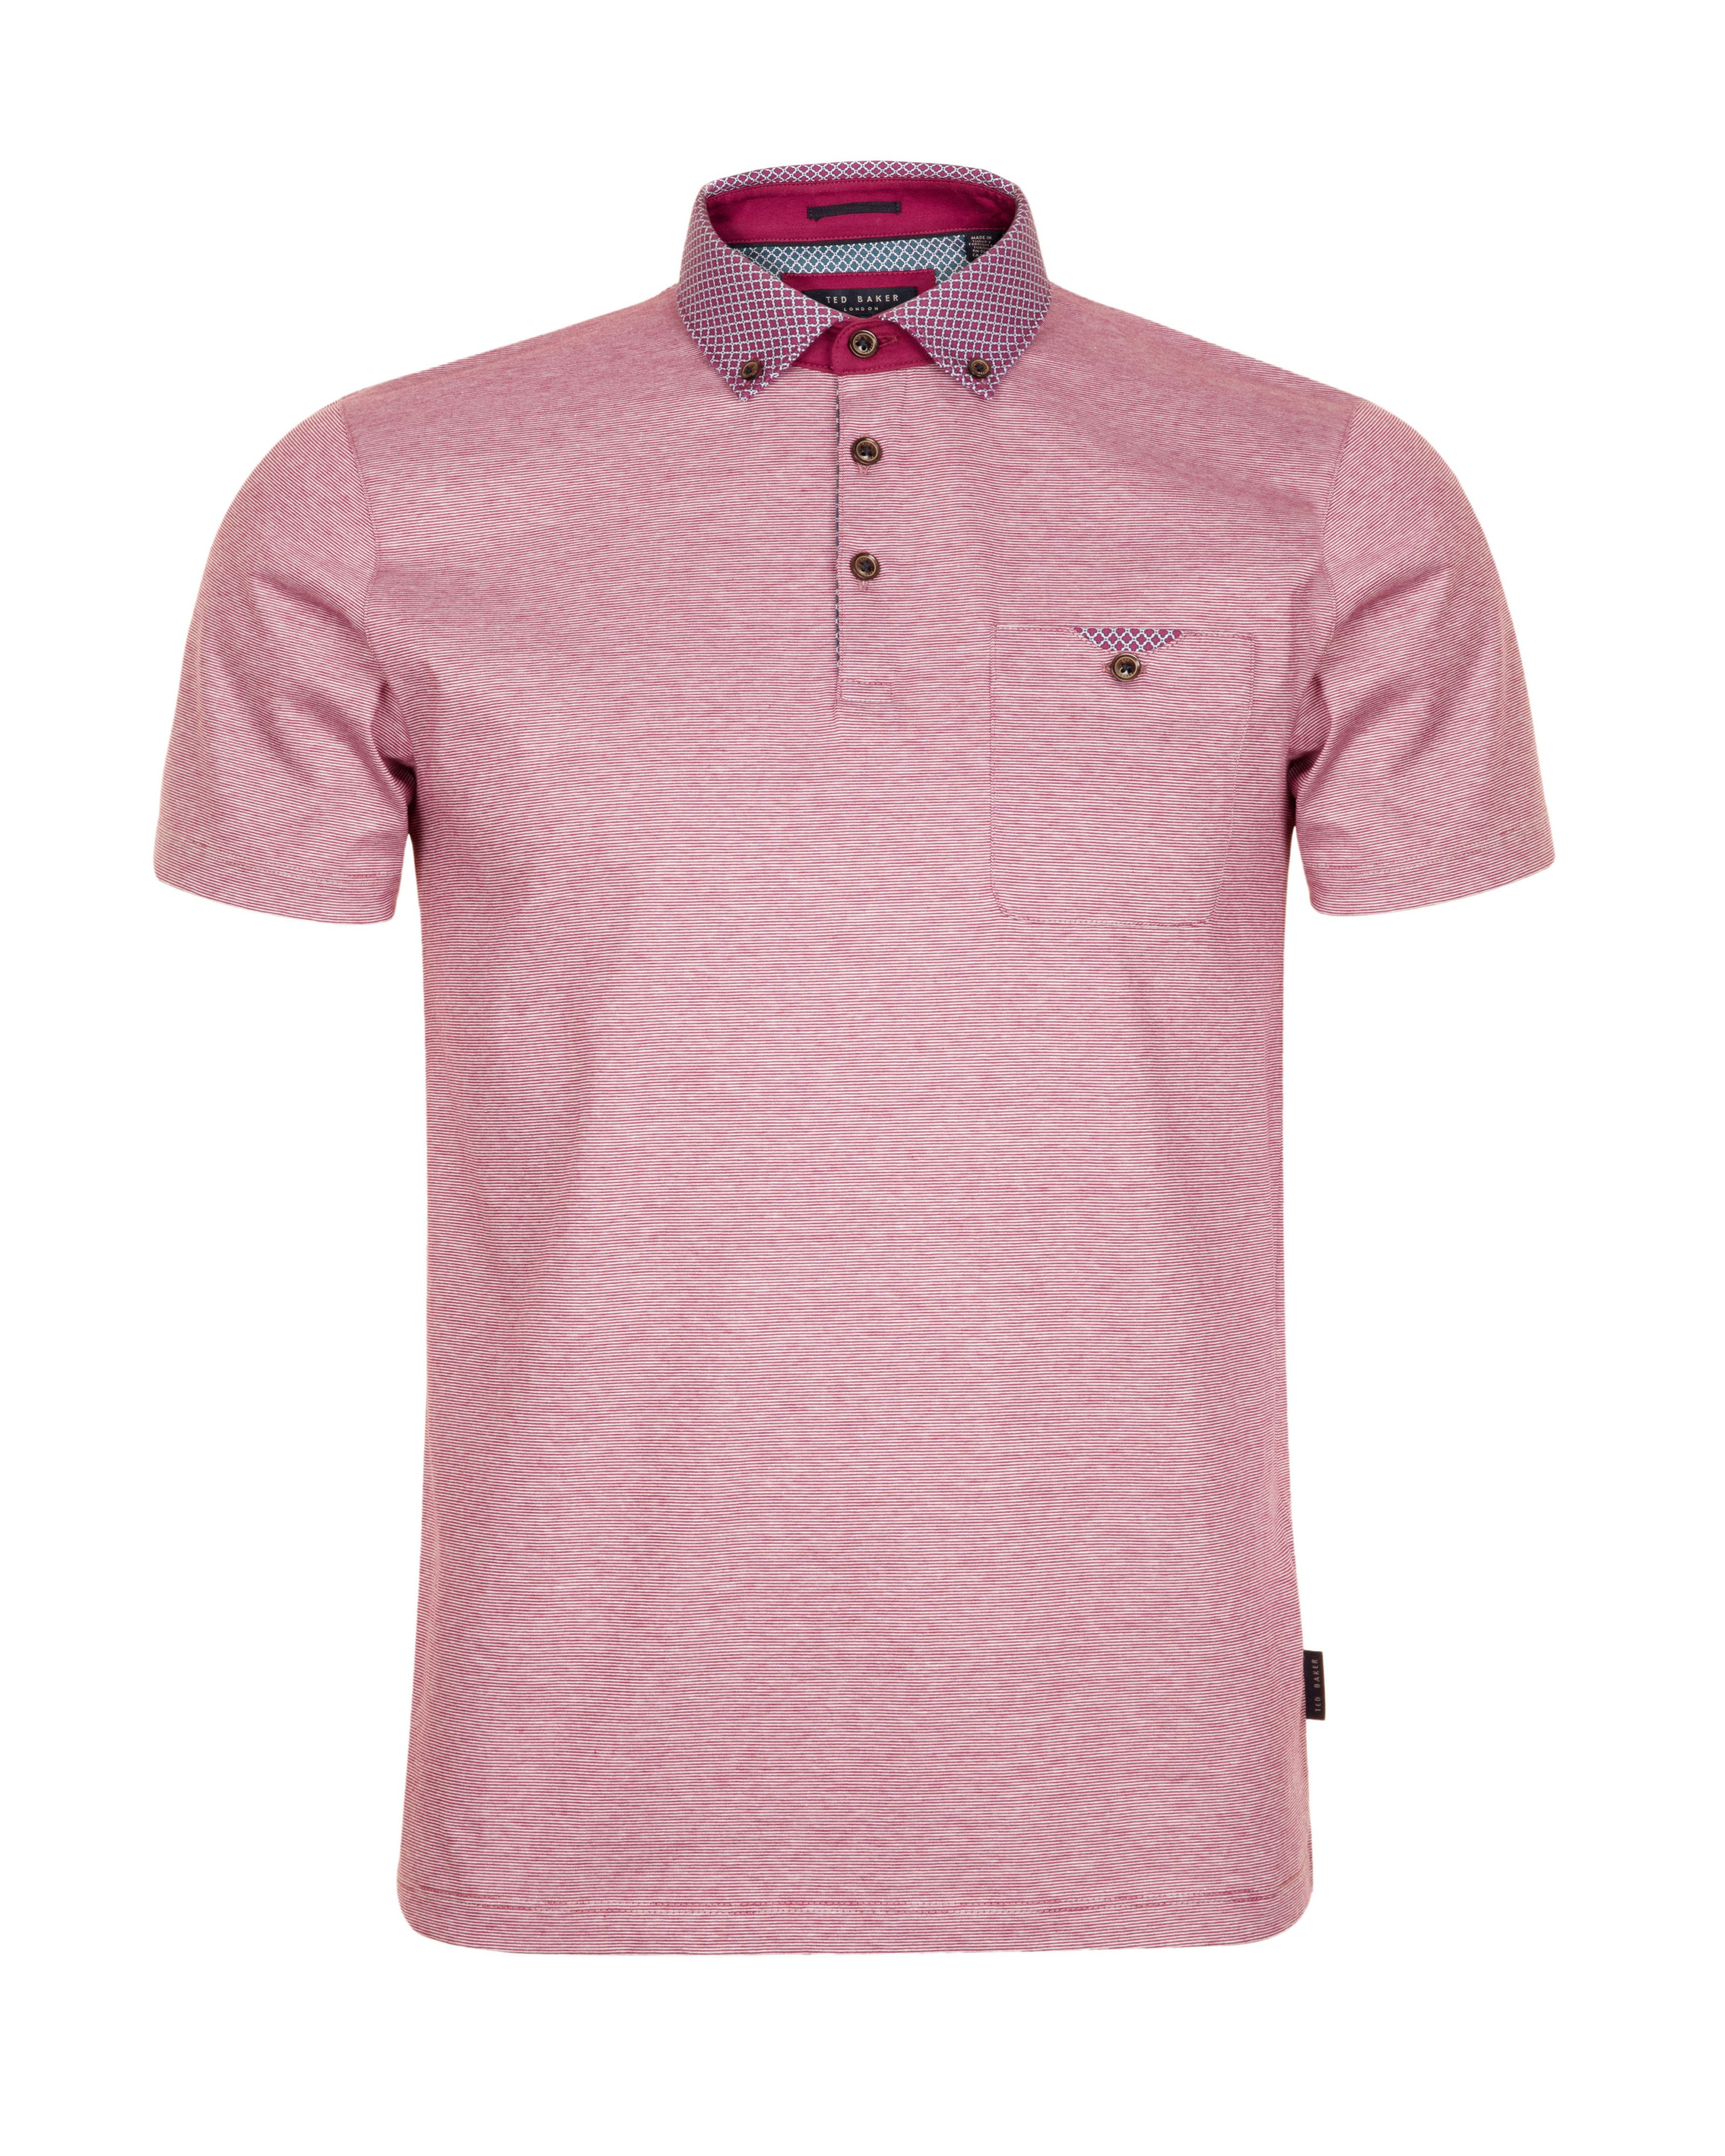 Benekey woven colour polo shirt